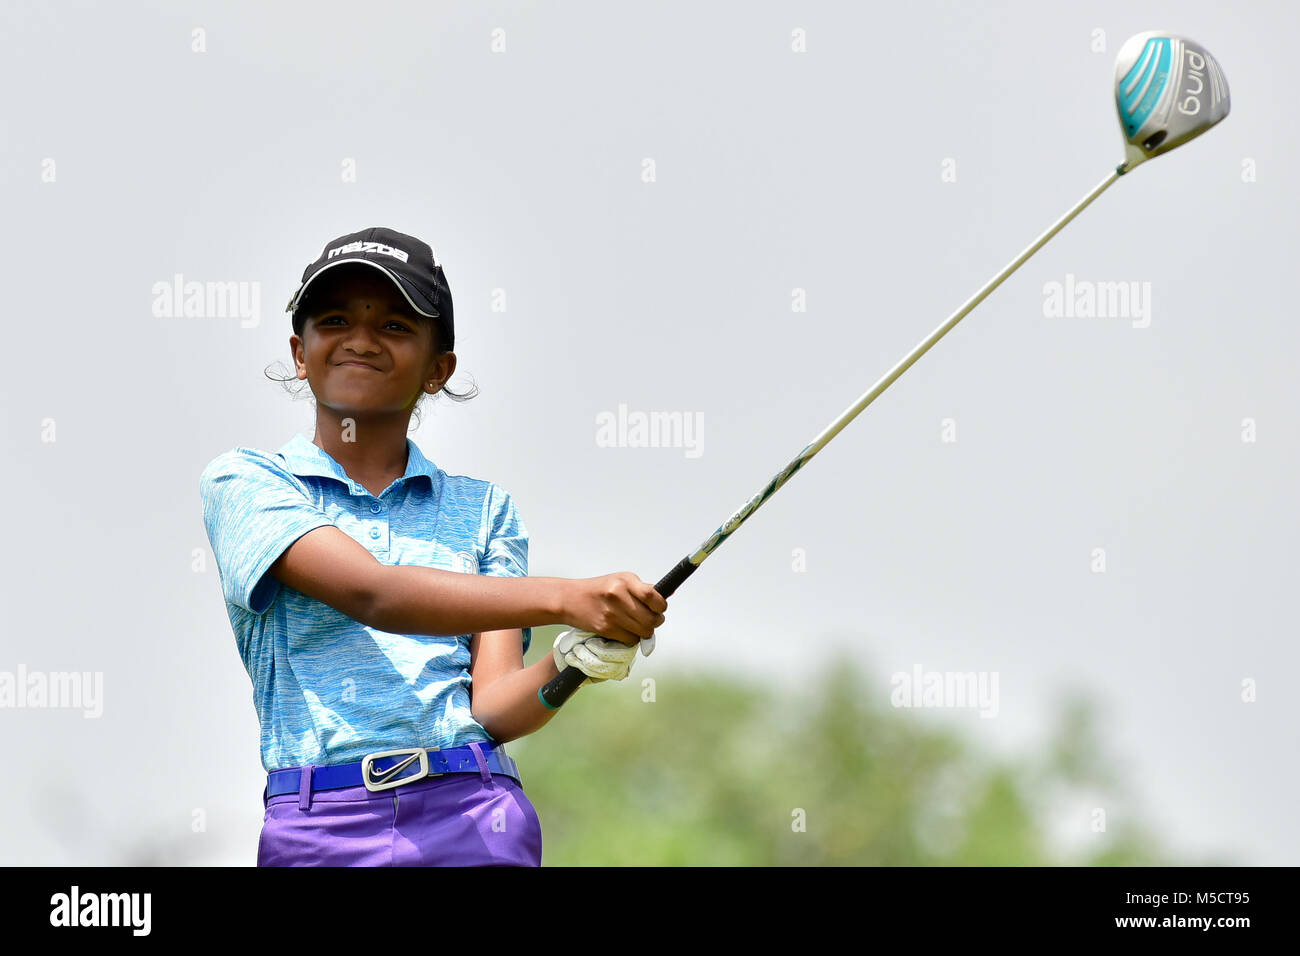 Danau, UKM Bangi - FEBRUARY 10: Divyasheni watches her tee shot on the 8th hole during Round One of the Danau Junior - Stock Image